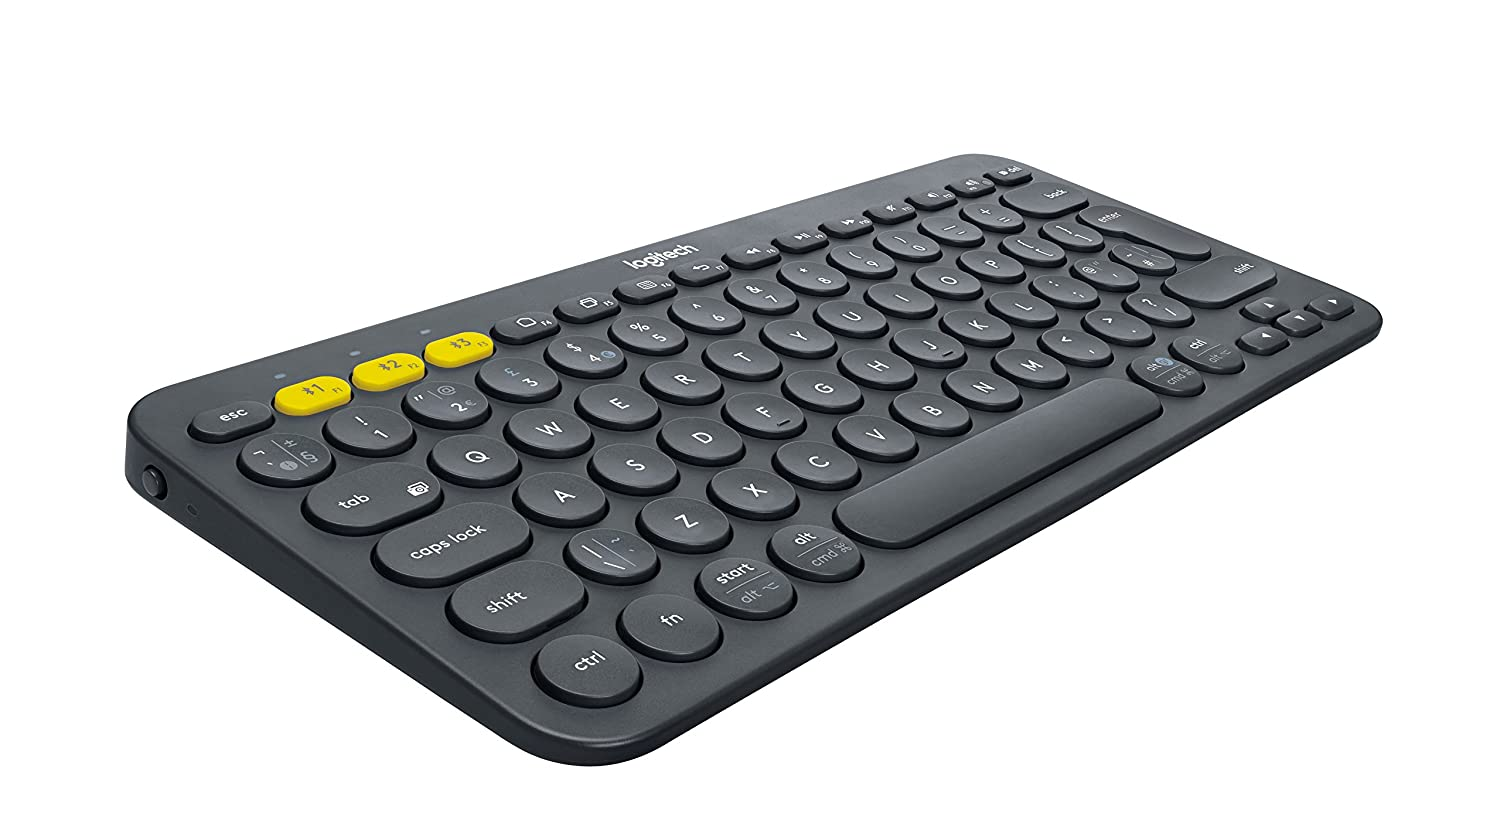 iOS and Apple TV Mac Black Logitech MX Anywhere 2 AMZ Wireless Bluetooth Mouse for Windows and Mac Android QWERTY Chrome UK Layout Black Logitech K380 Multi-Device Bluetooth Keyboard for Windows